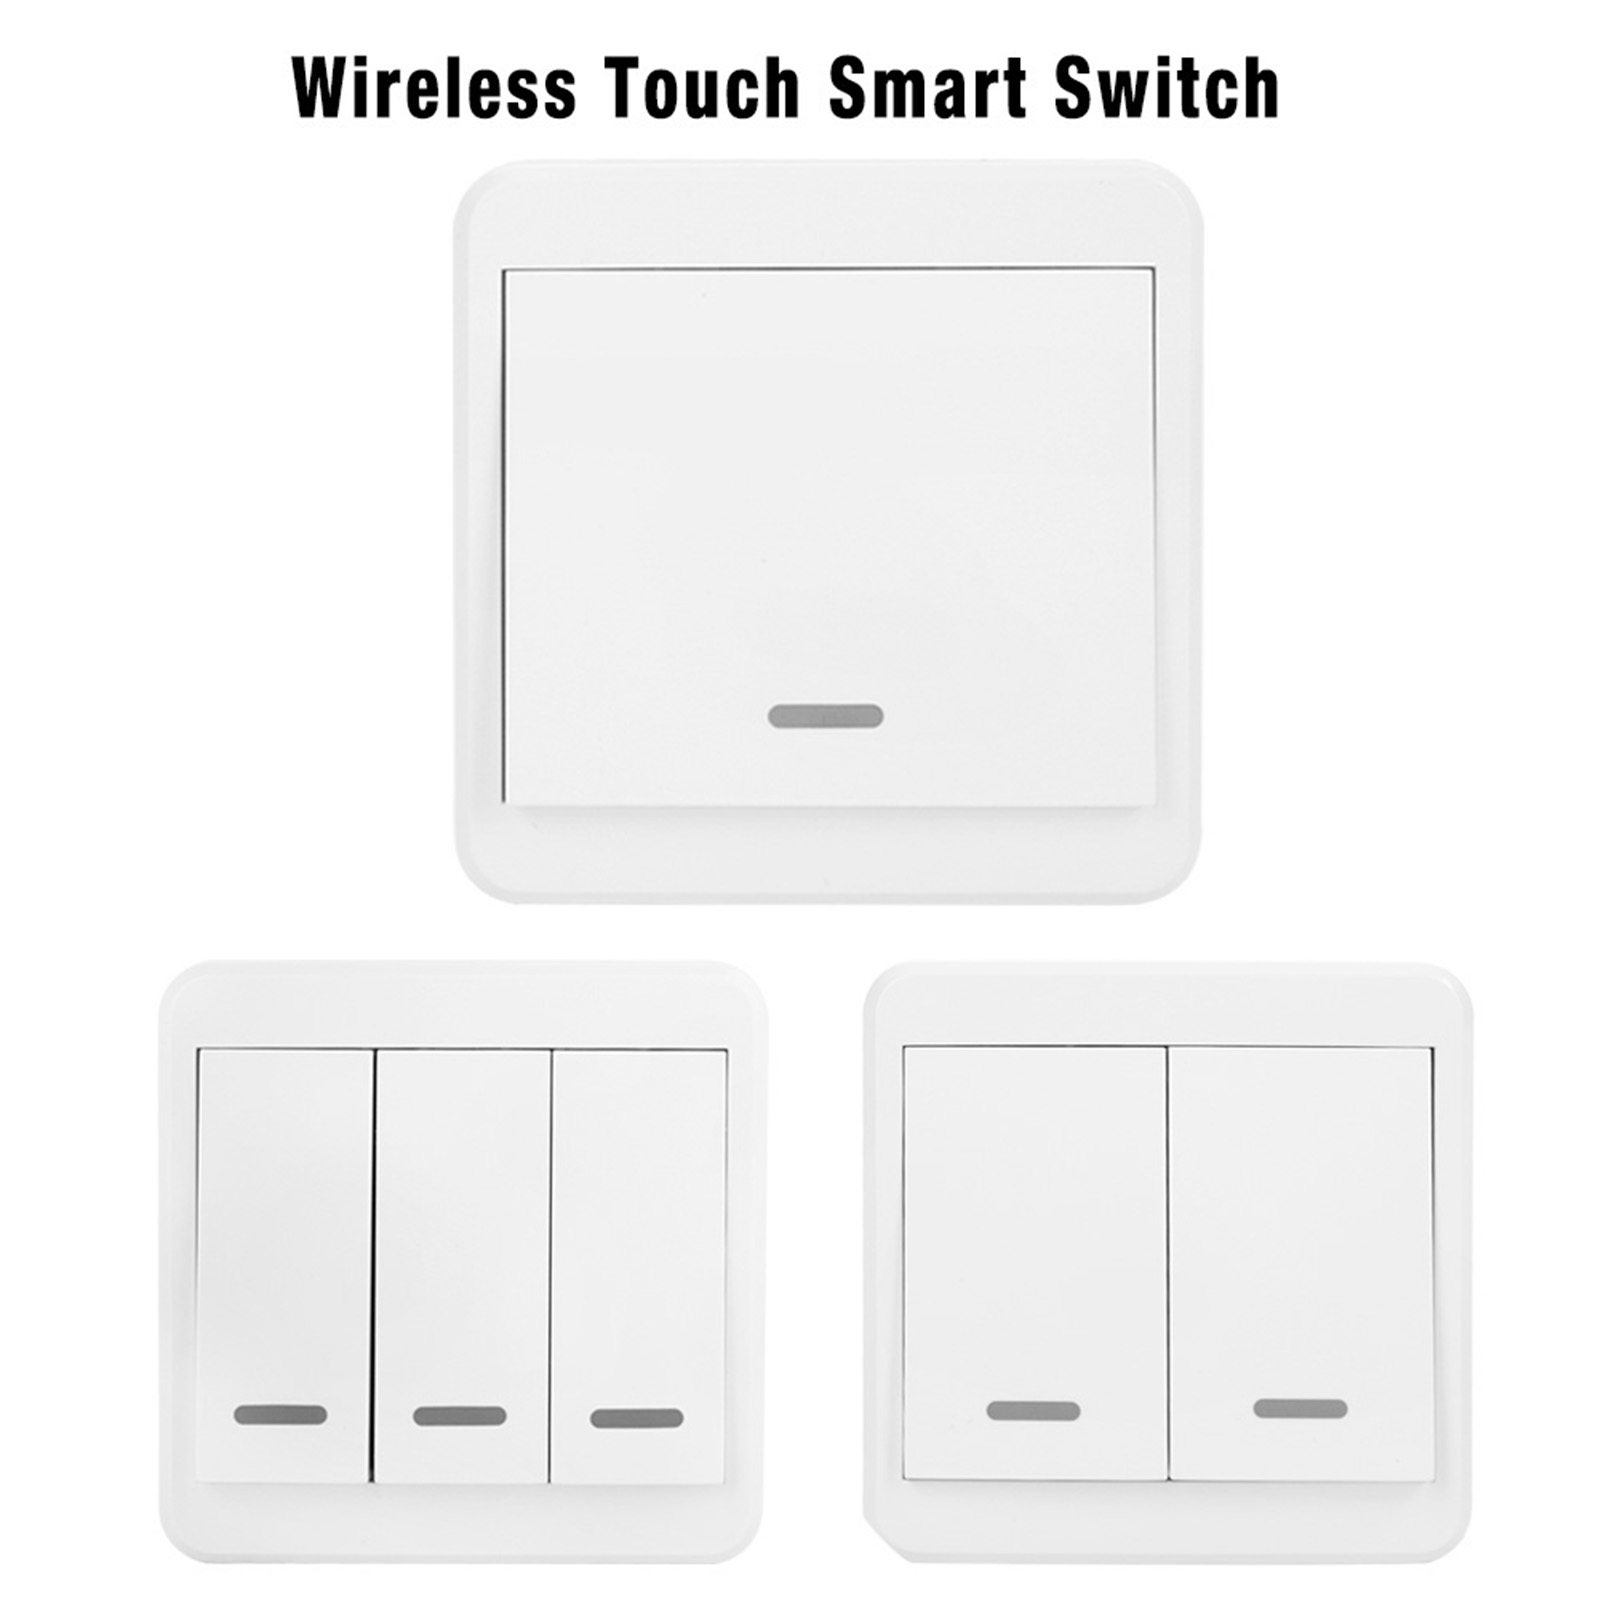 3 Way Switch Alexa Wiring Diagrams Data Base Smart Light 1 2 3way Wifi Wall Press Touch Panel Uk For Rh Ebay